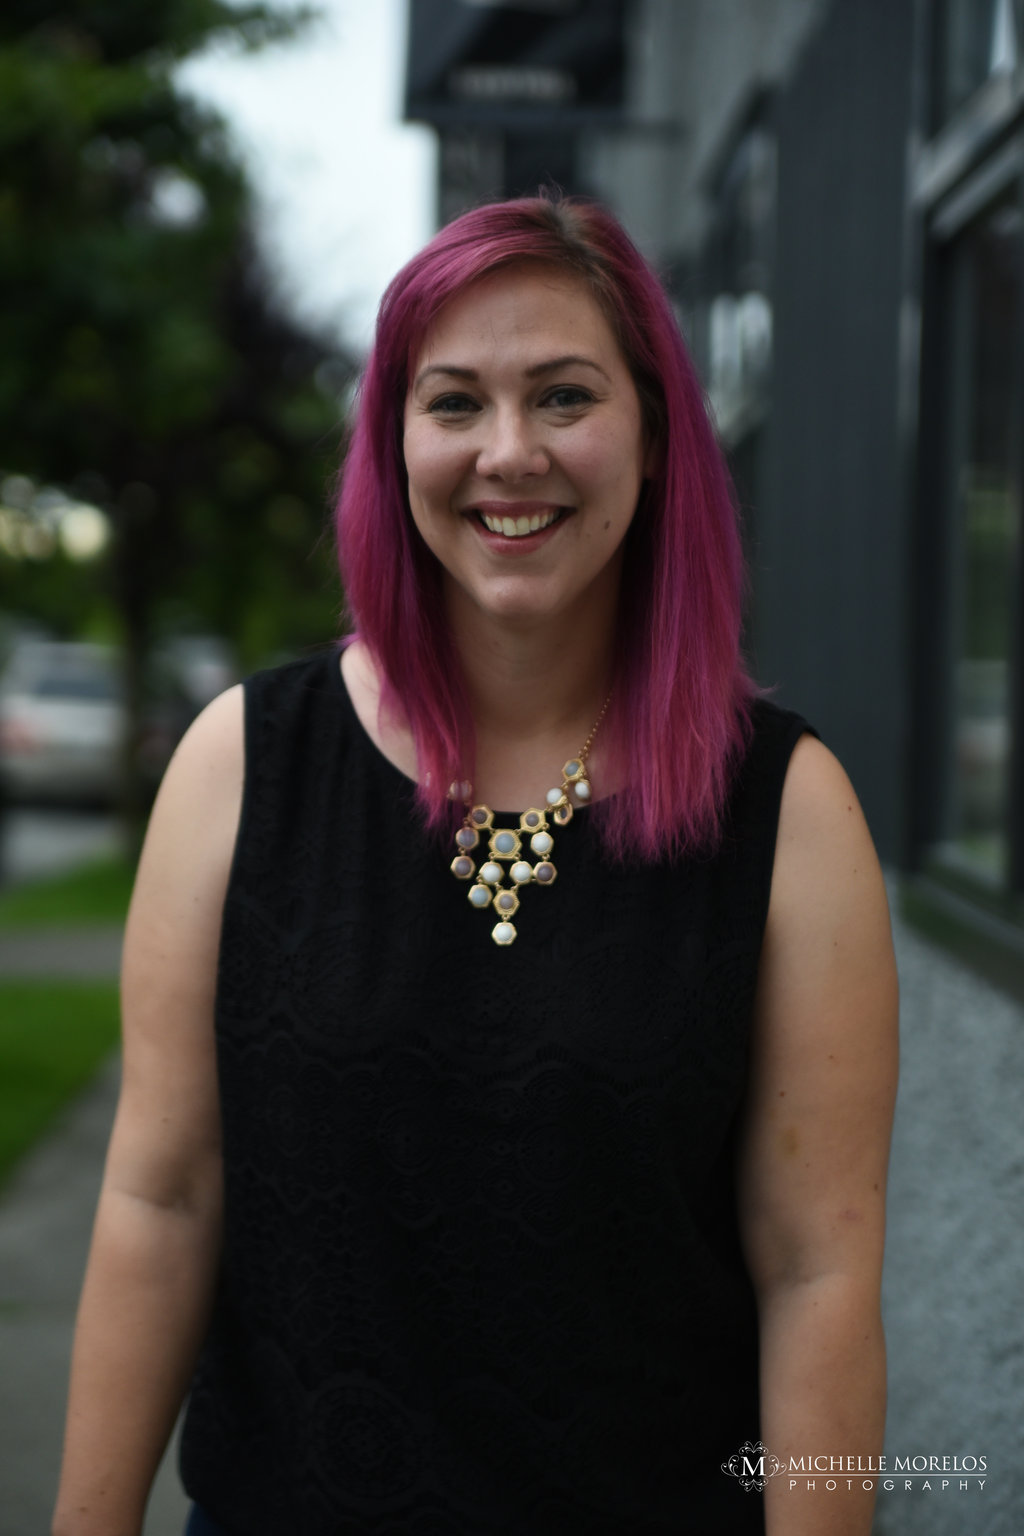 Vancouver Mom Profile On Amanda Buck Cool Stuff In New West